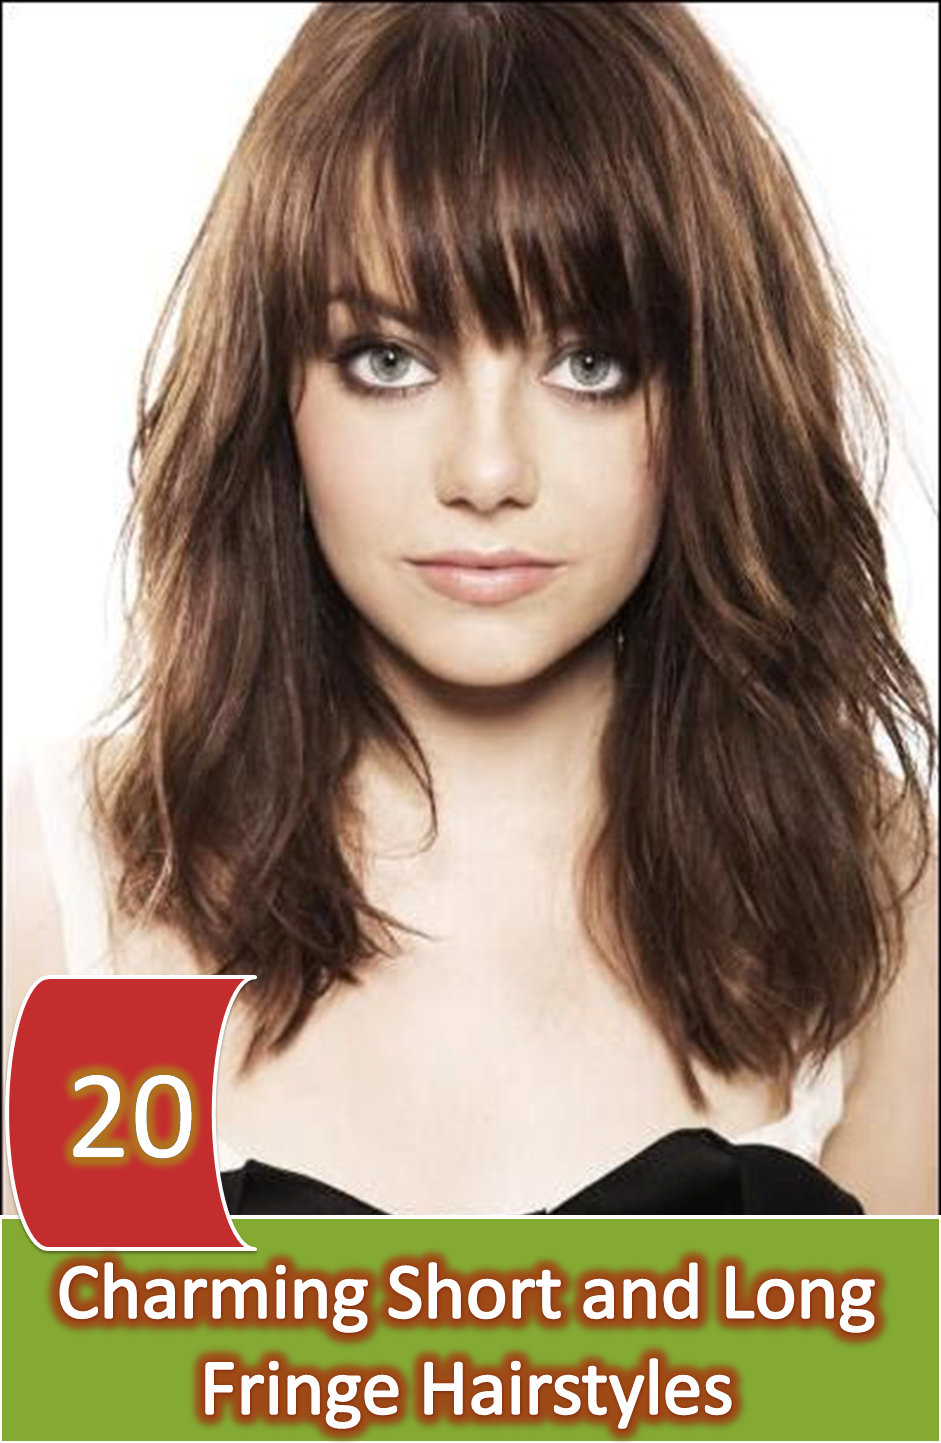 20 Appealing Short & Long Fringe Hairstyle For A Glowing Beauty ...